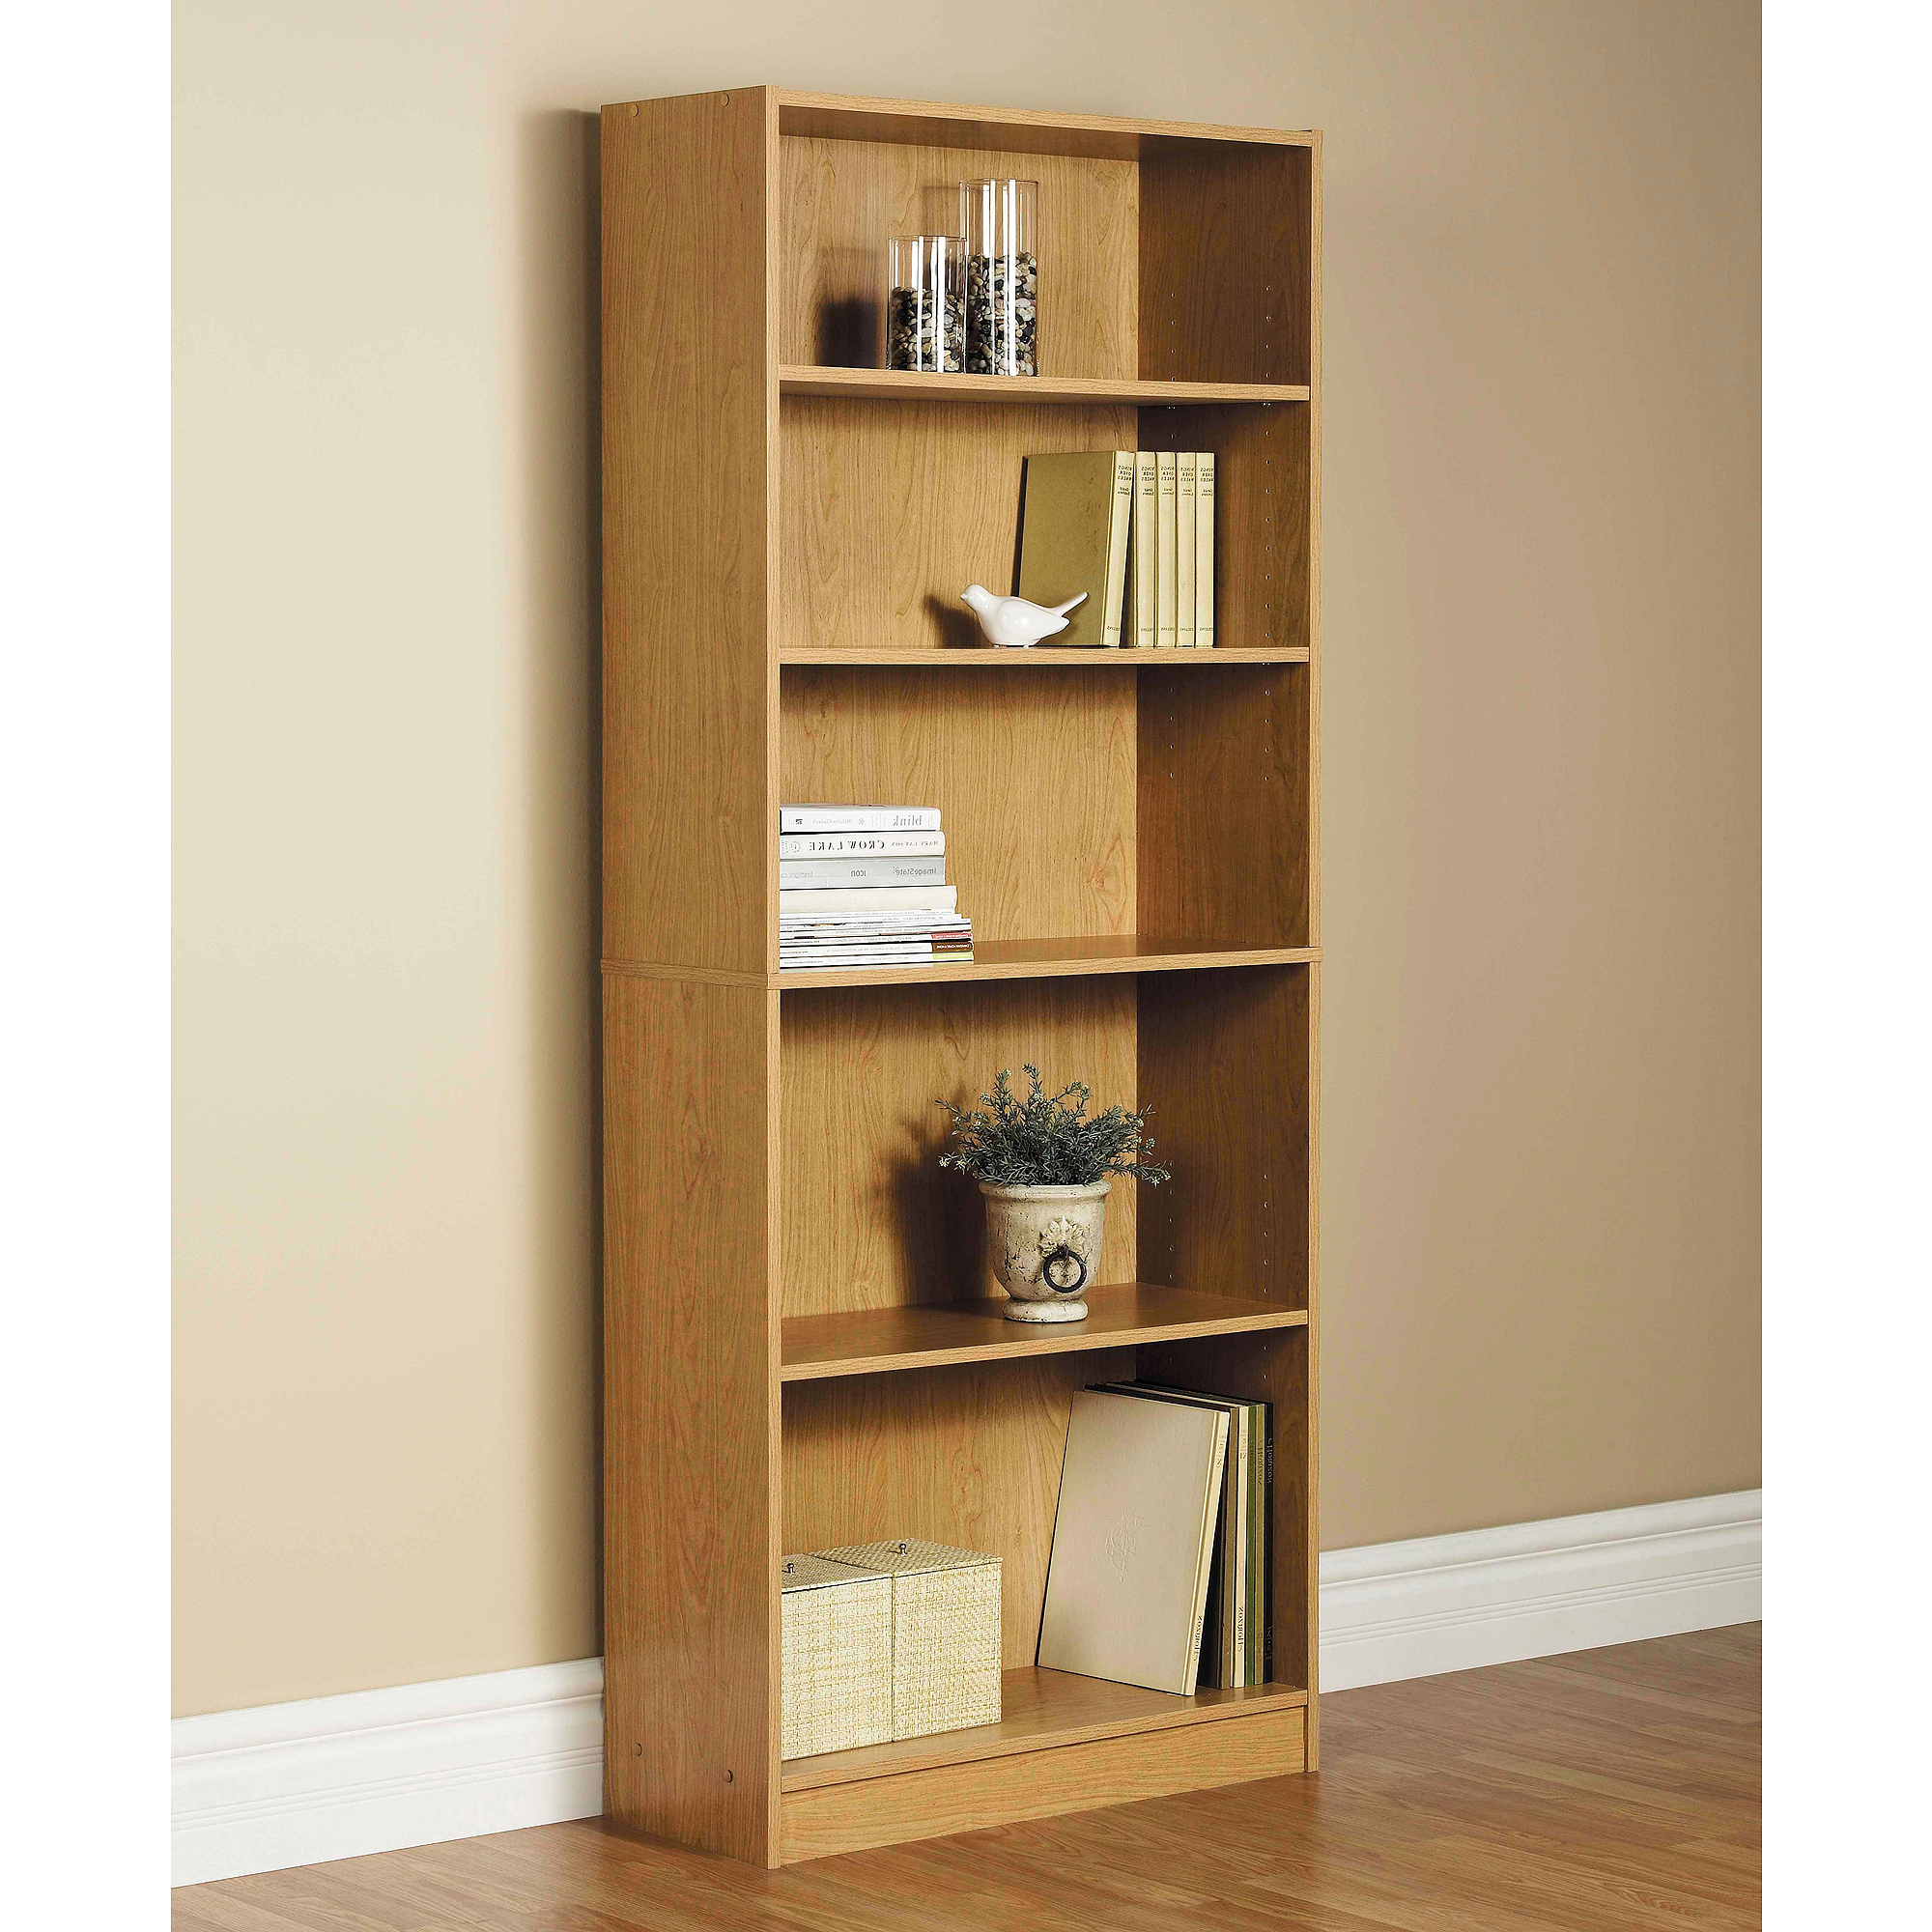 """Orion 72"""" 5 Shelf Wide Bookcase, Oak With Regard To Most Current Decorative Standard Bookcases (View 18 of 20)"""